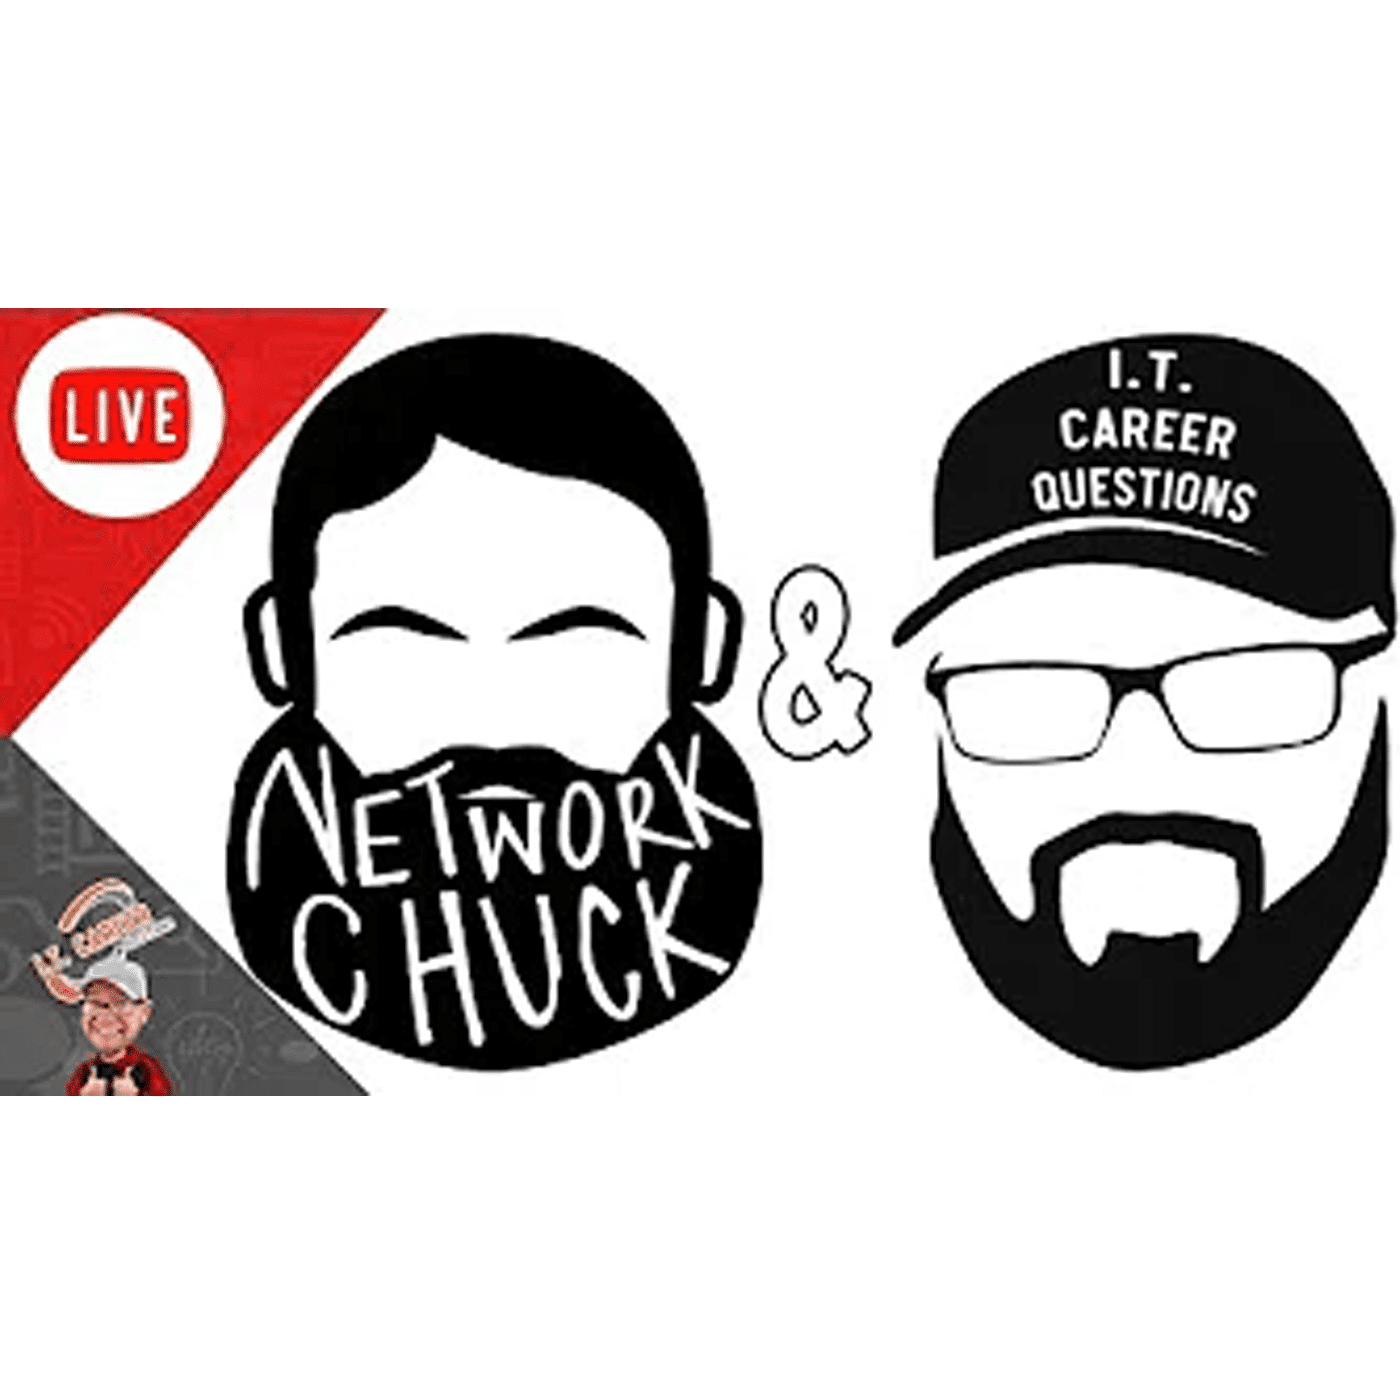 Live Interview with Network Chuck - Ask Us Anything